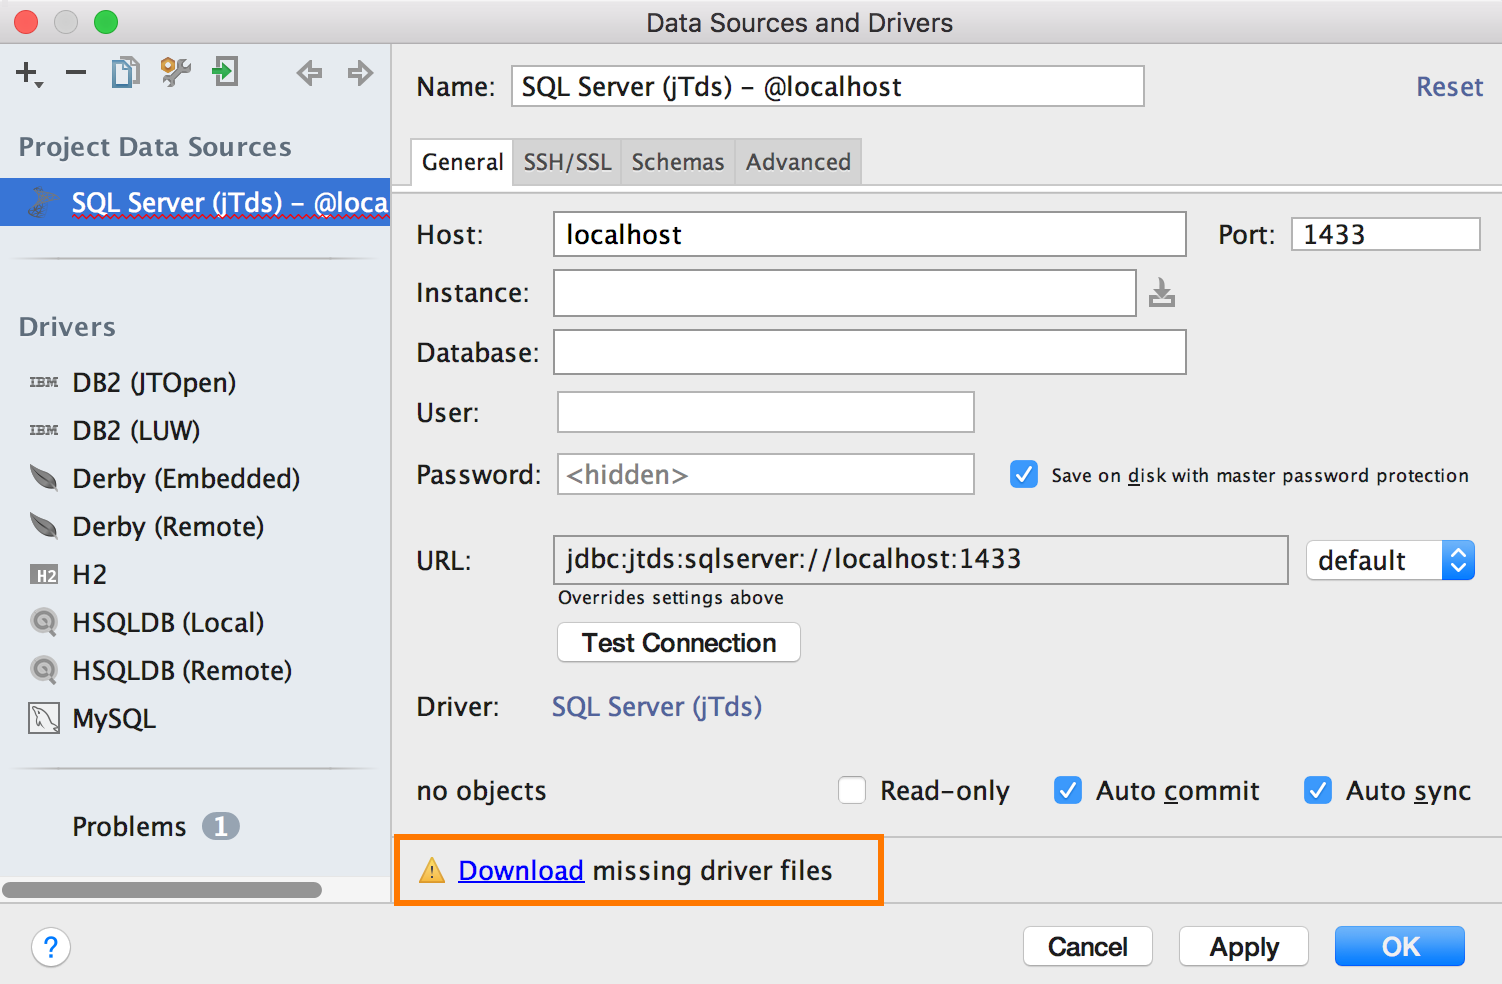 Click the Download missing drivers link